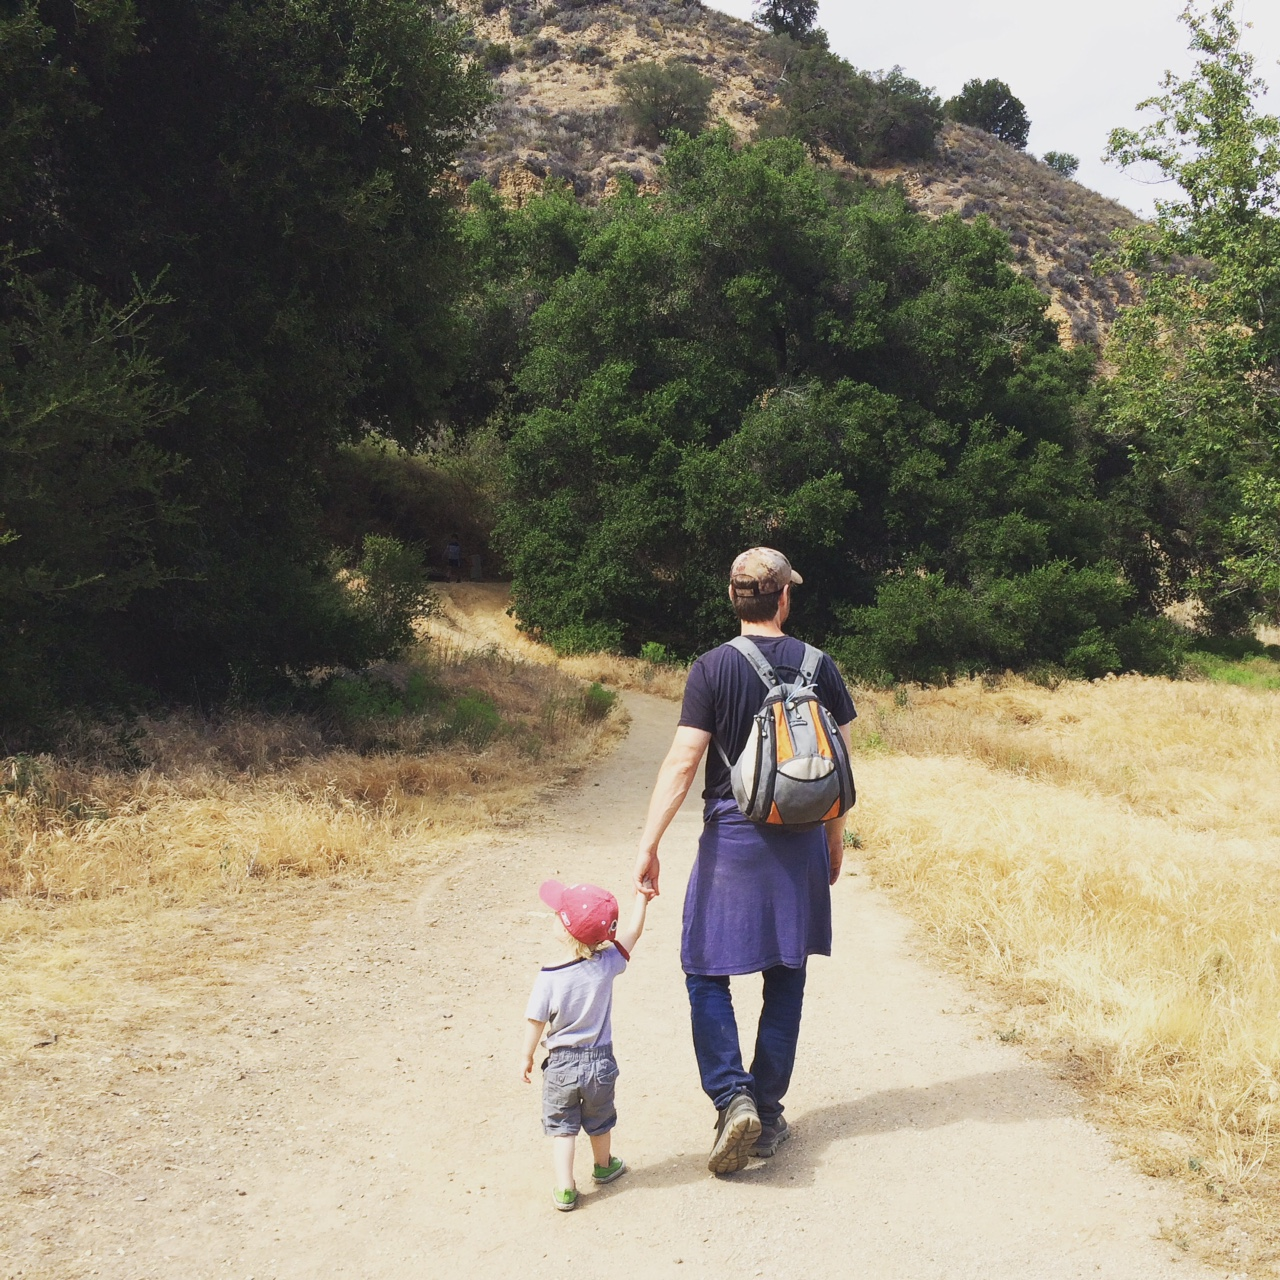 5 Reasons Why Every L.A. Kid Needs To Go Camping